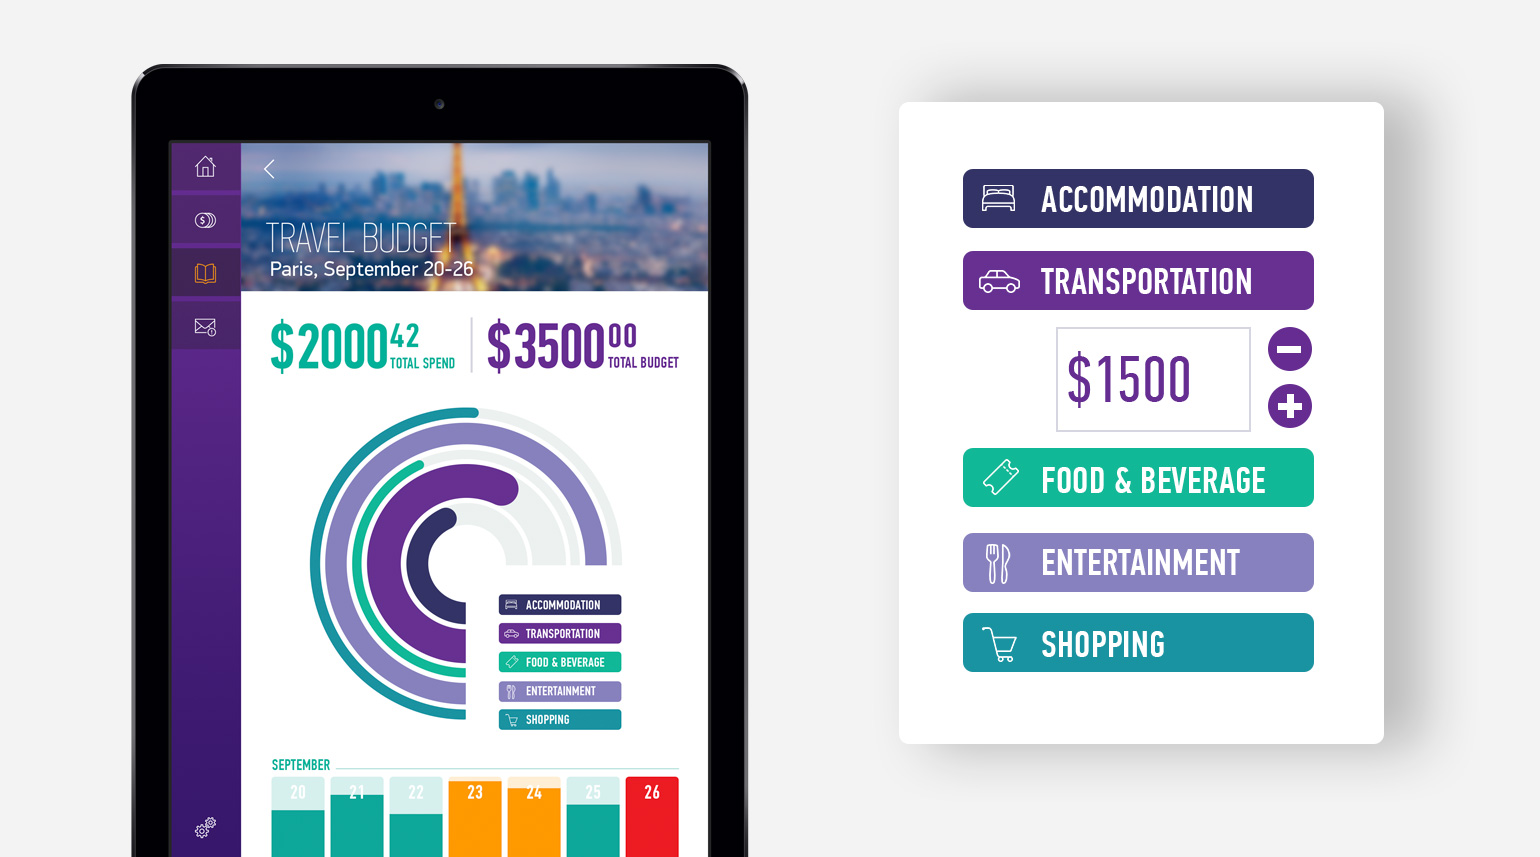 Data visualization of travel budgets within the tablet app.